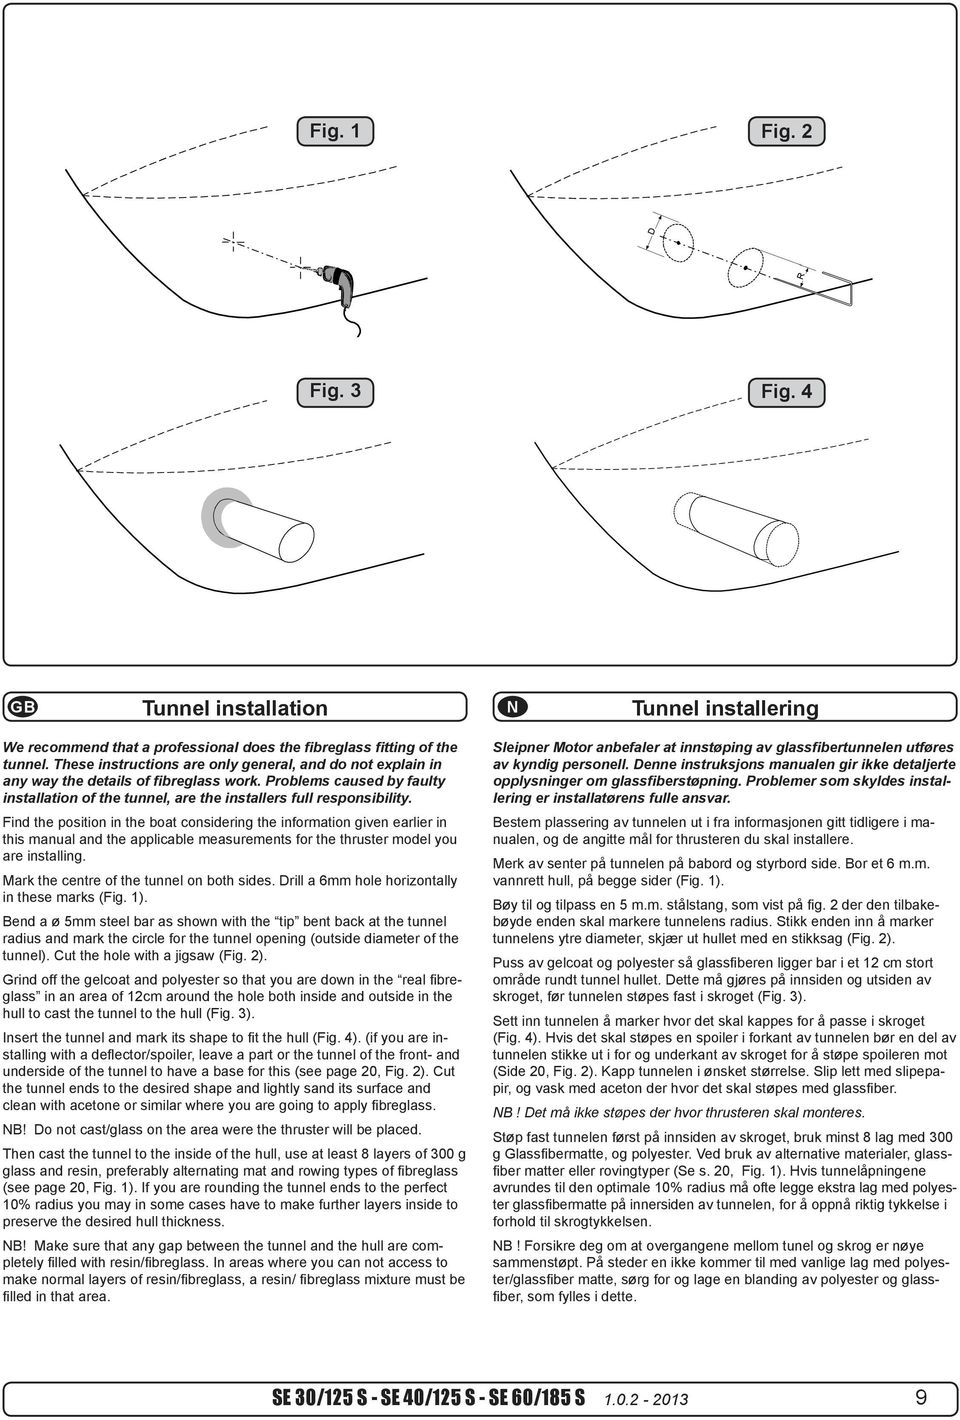 Find position in boat consiing information given earlier in this manual applicable measurements for thruster model you are installing. Mark centre of on both sides.